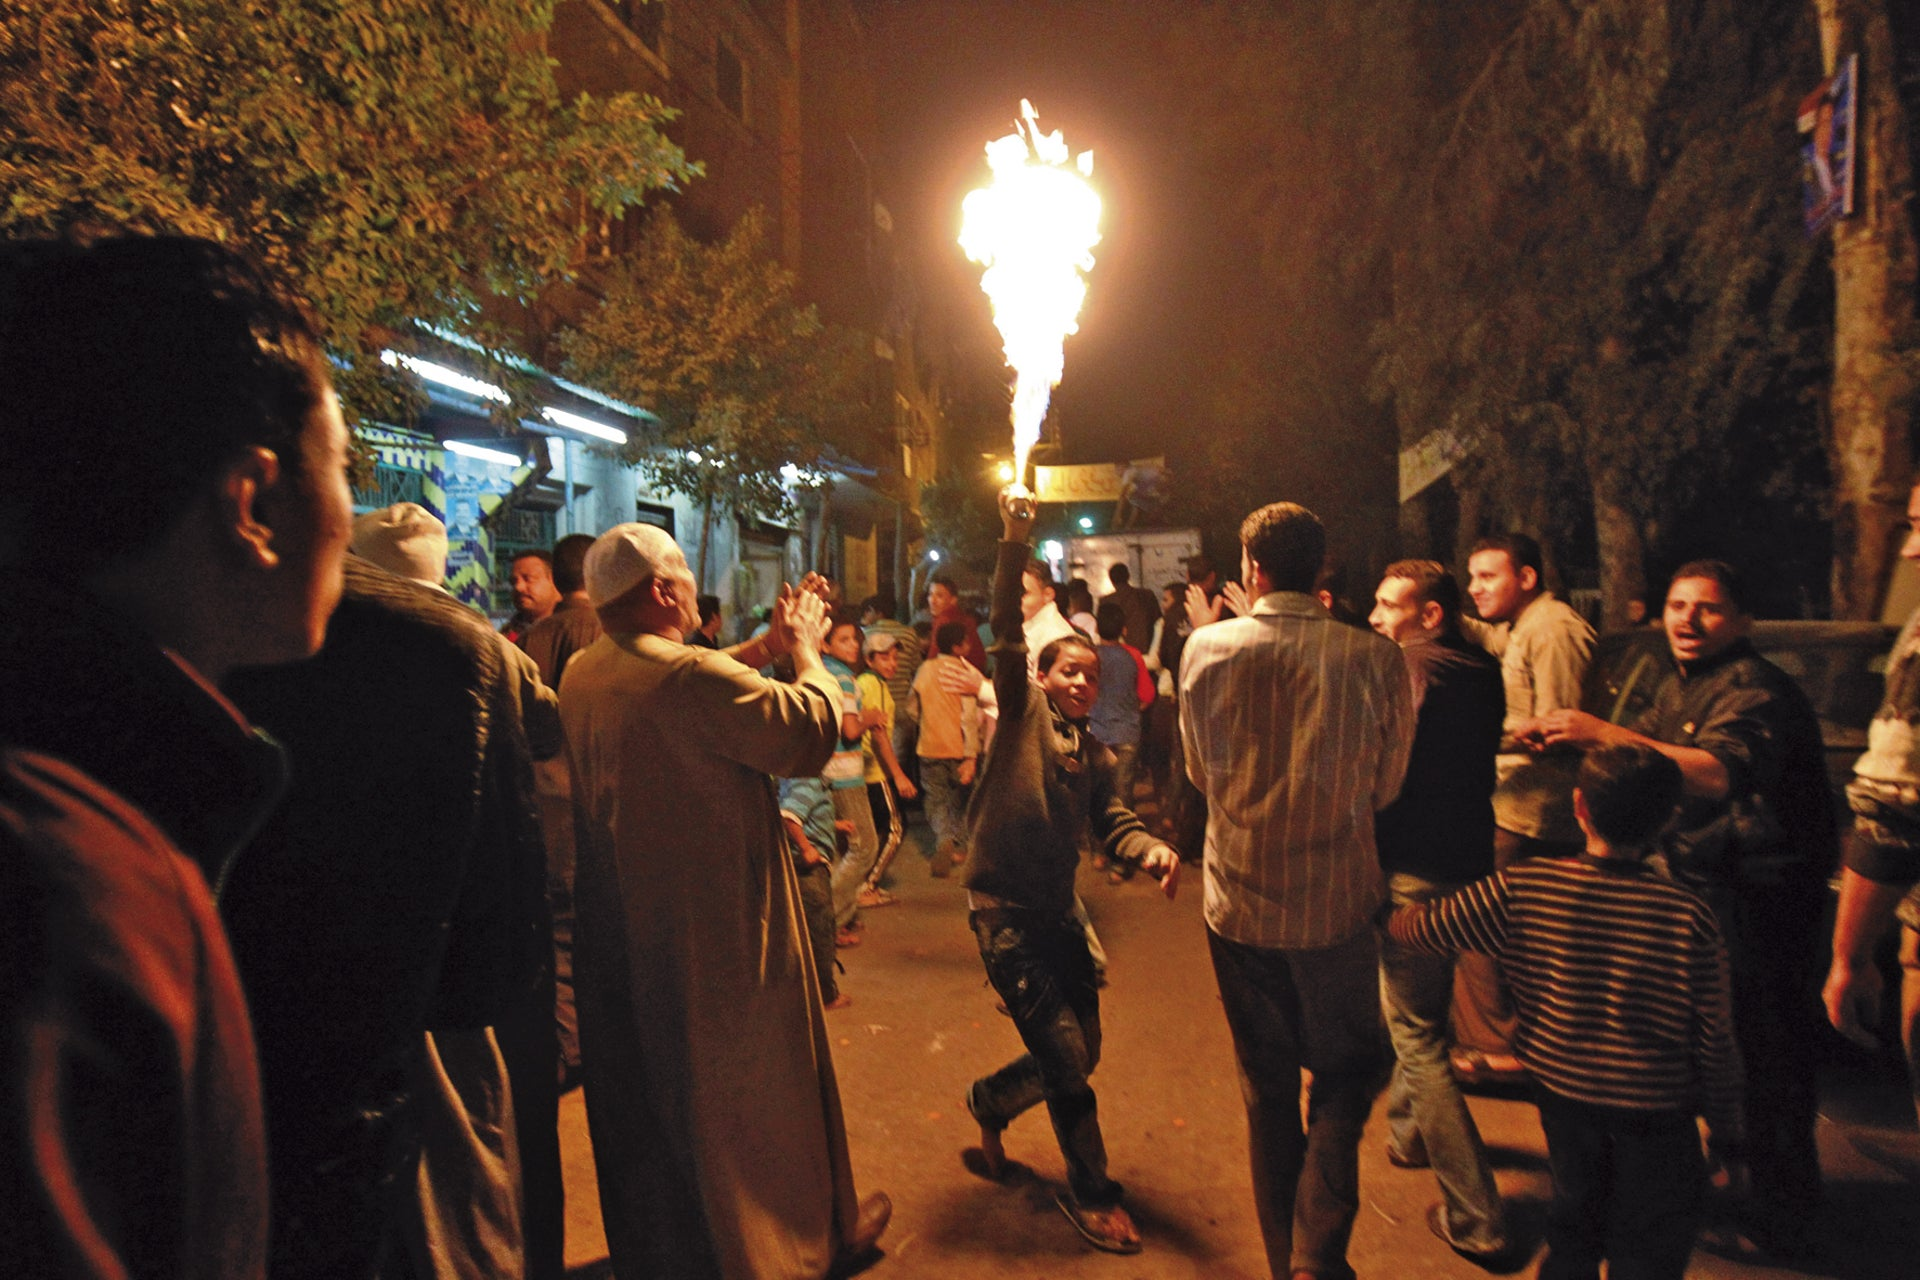 Fire eaters in Cairo.